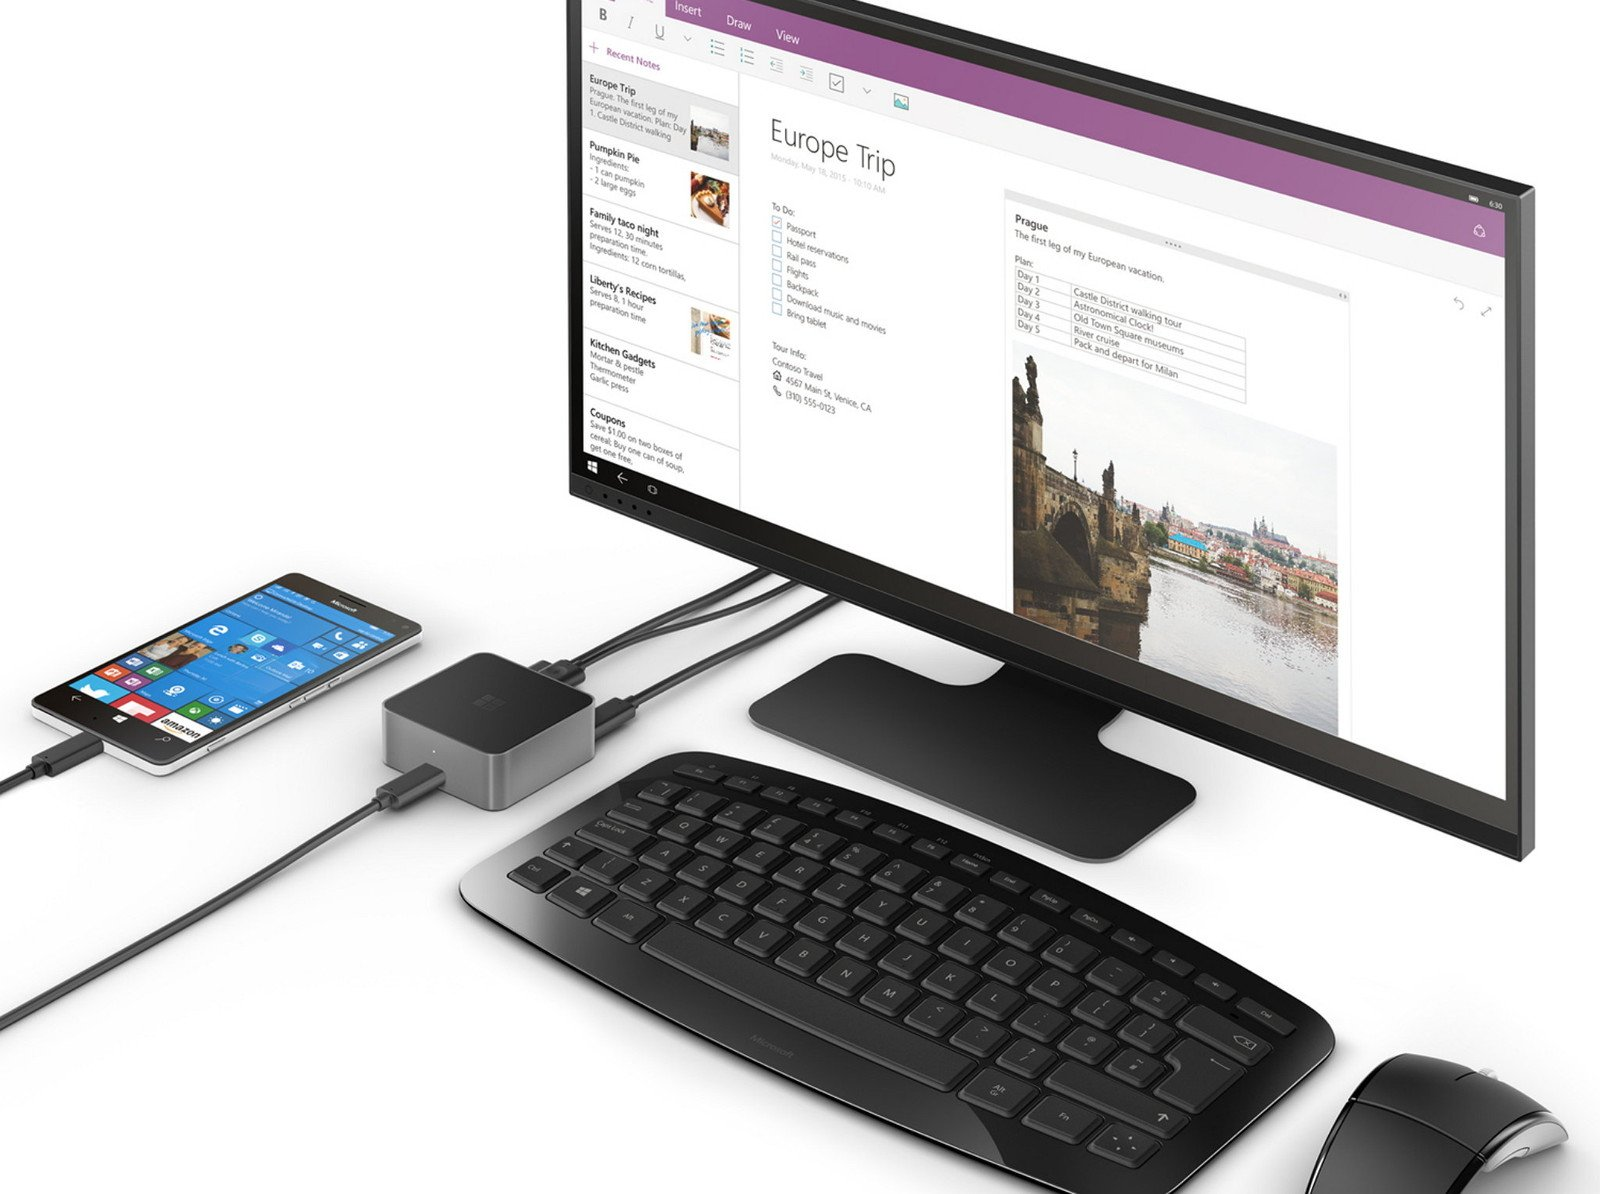 How to use Windows Continuum with Windows 10 Mobile devices